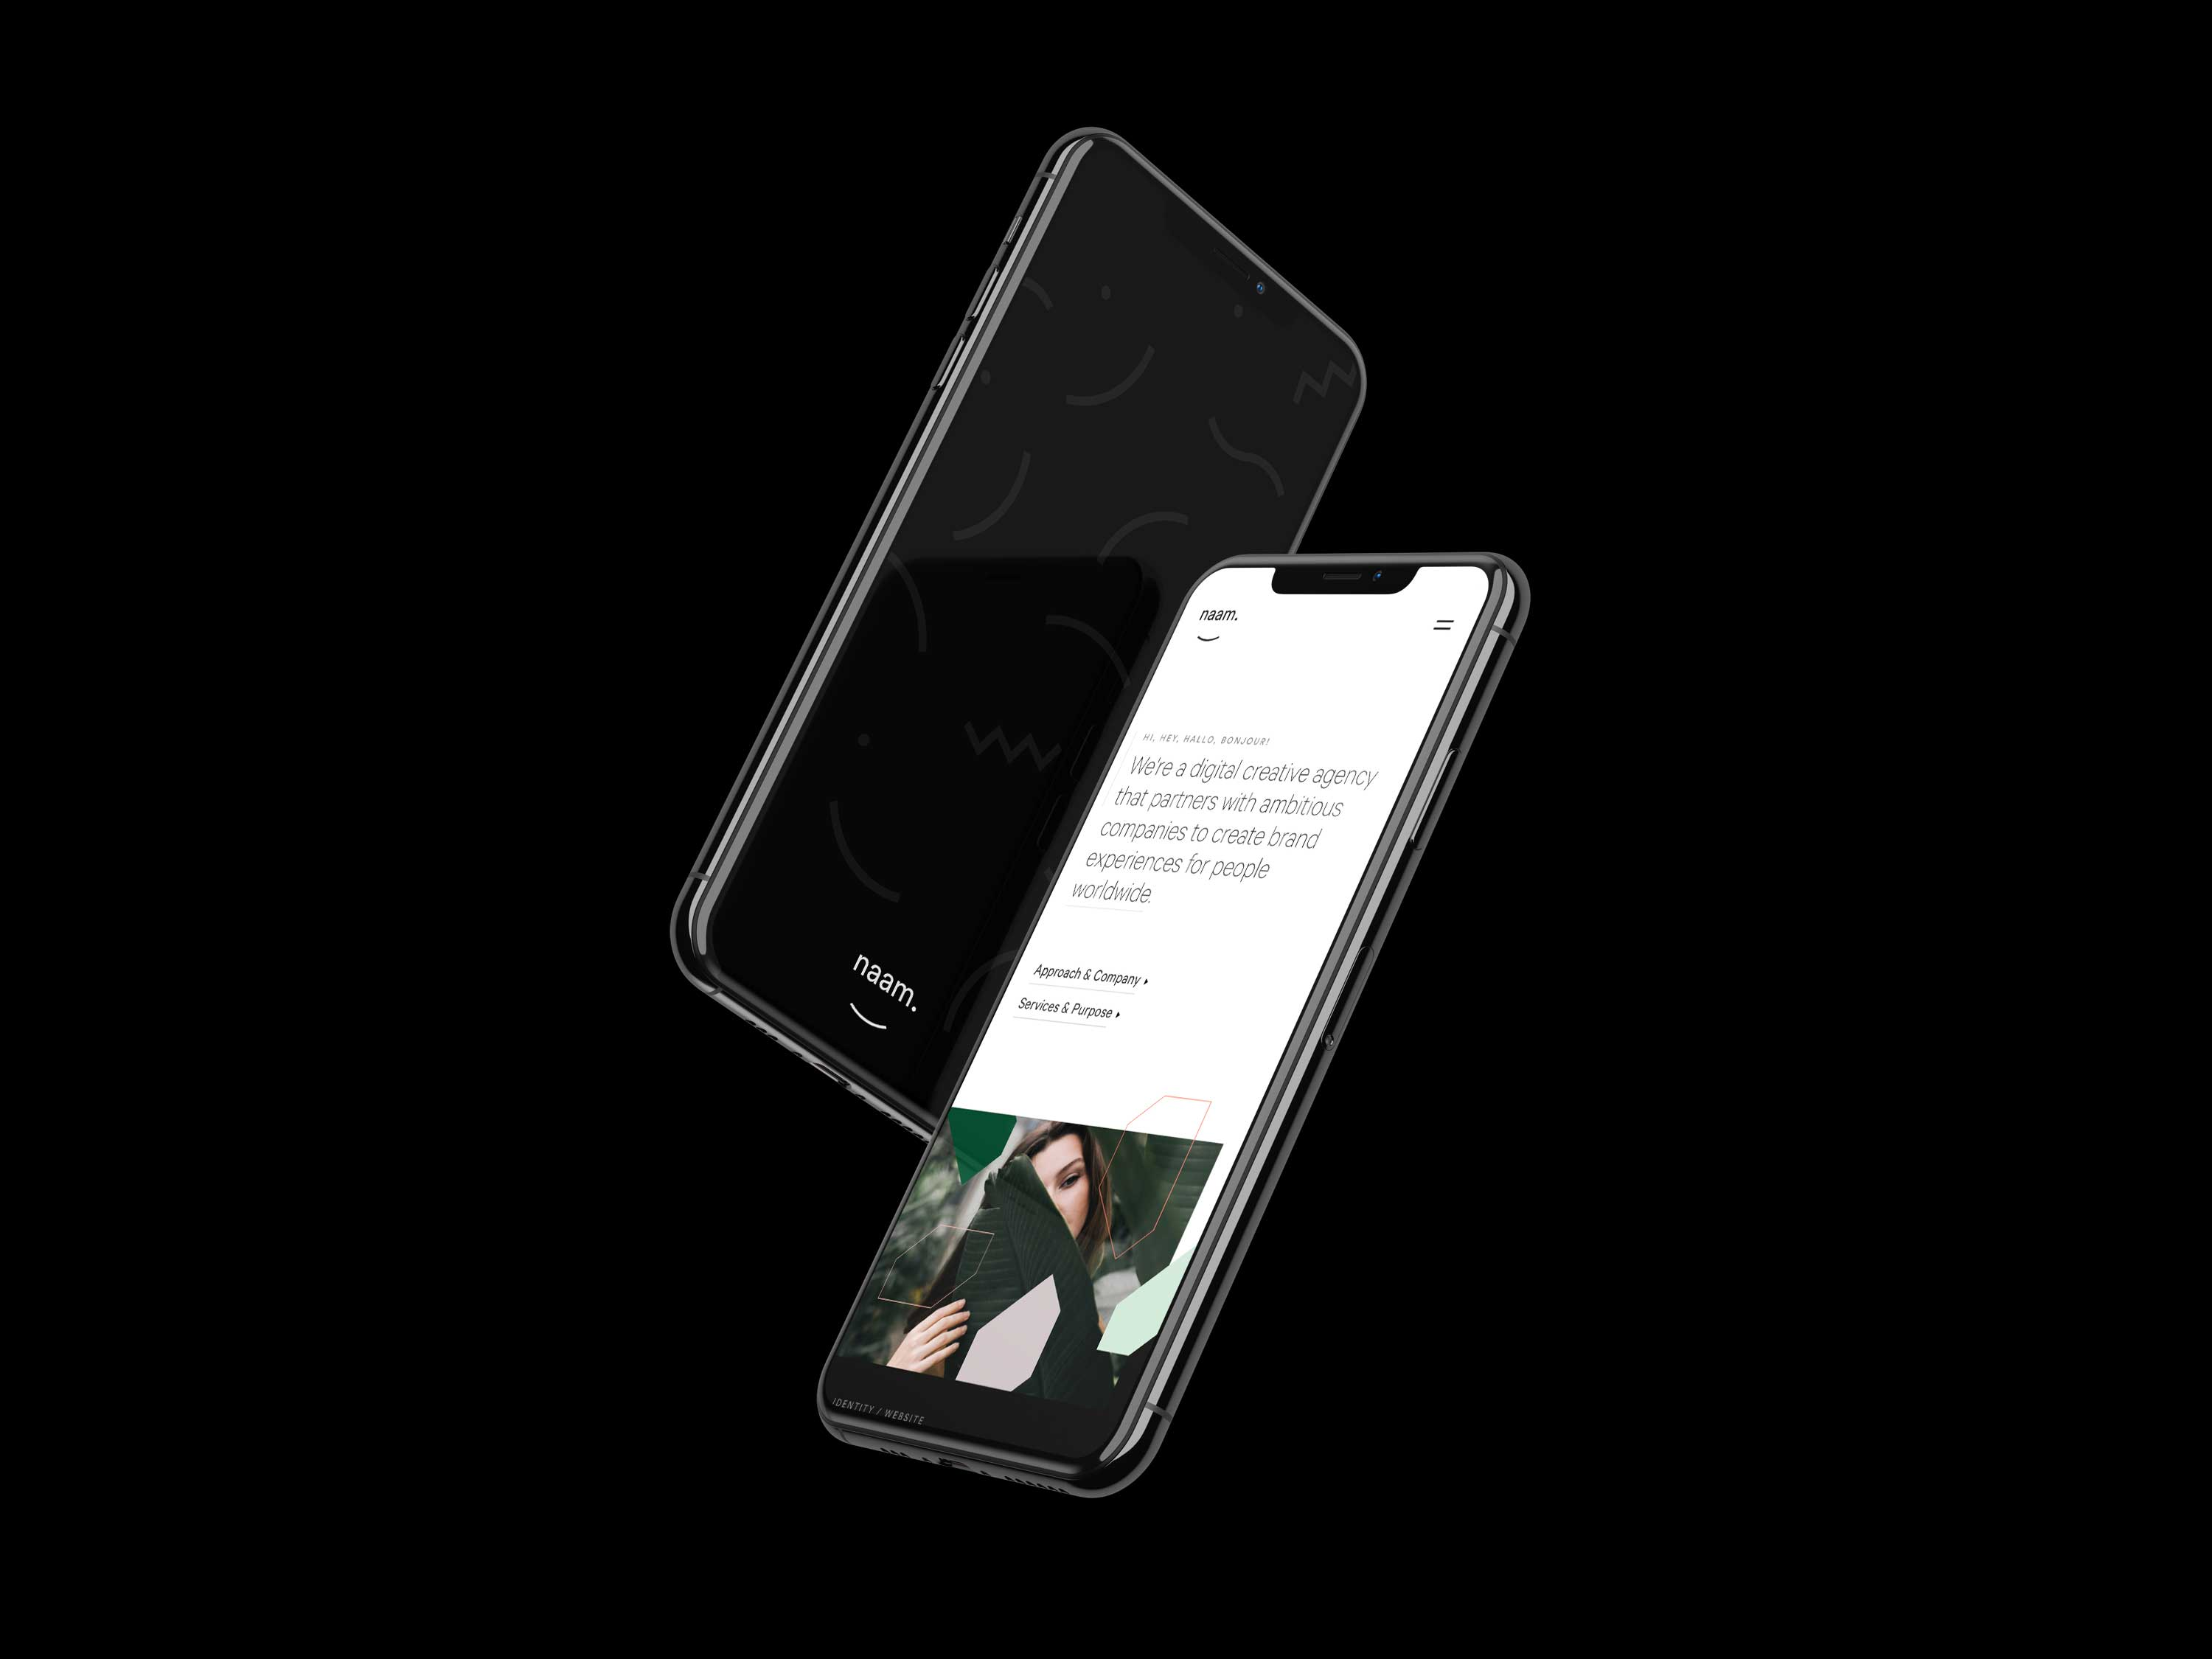 Two floating iPhone XS with the new Naam brand and website.